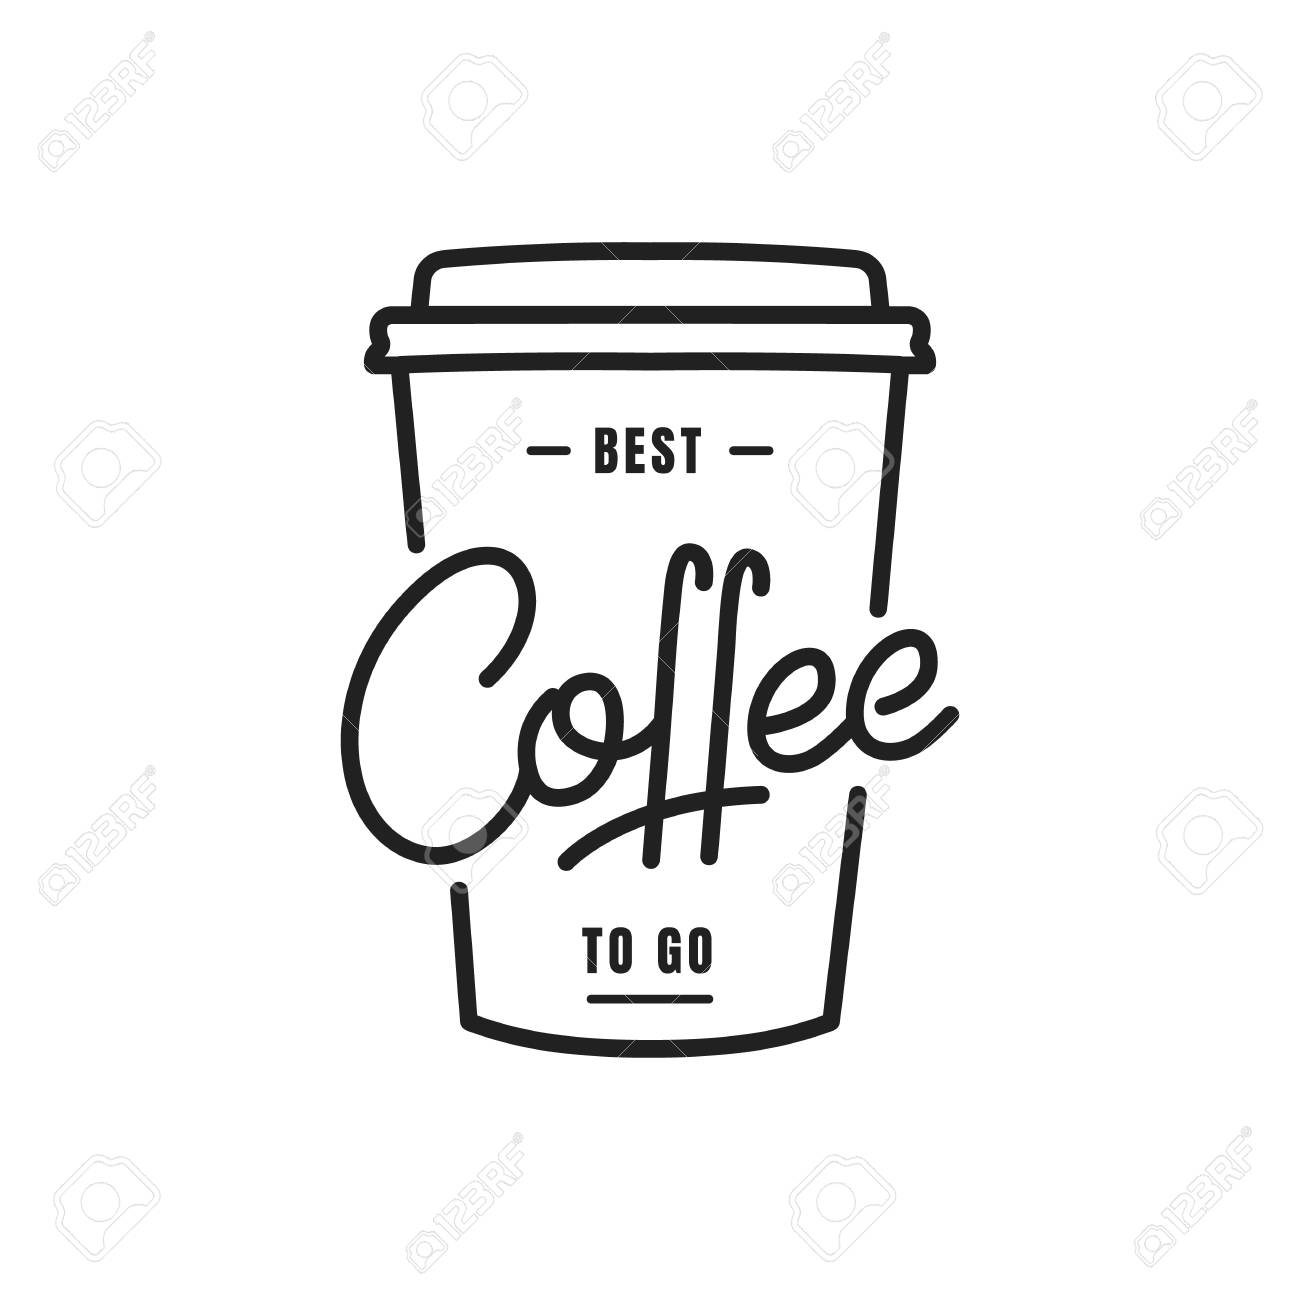 Coffee. Coffee to go lettering illustration on a paper cup. Coffee label badge emblem - 96589251